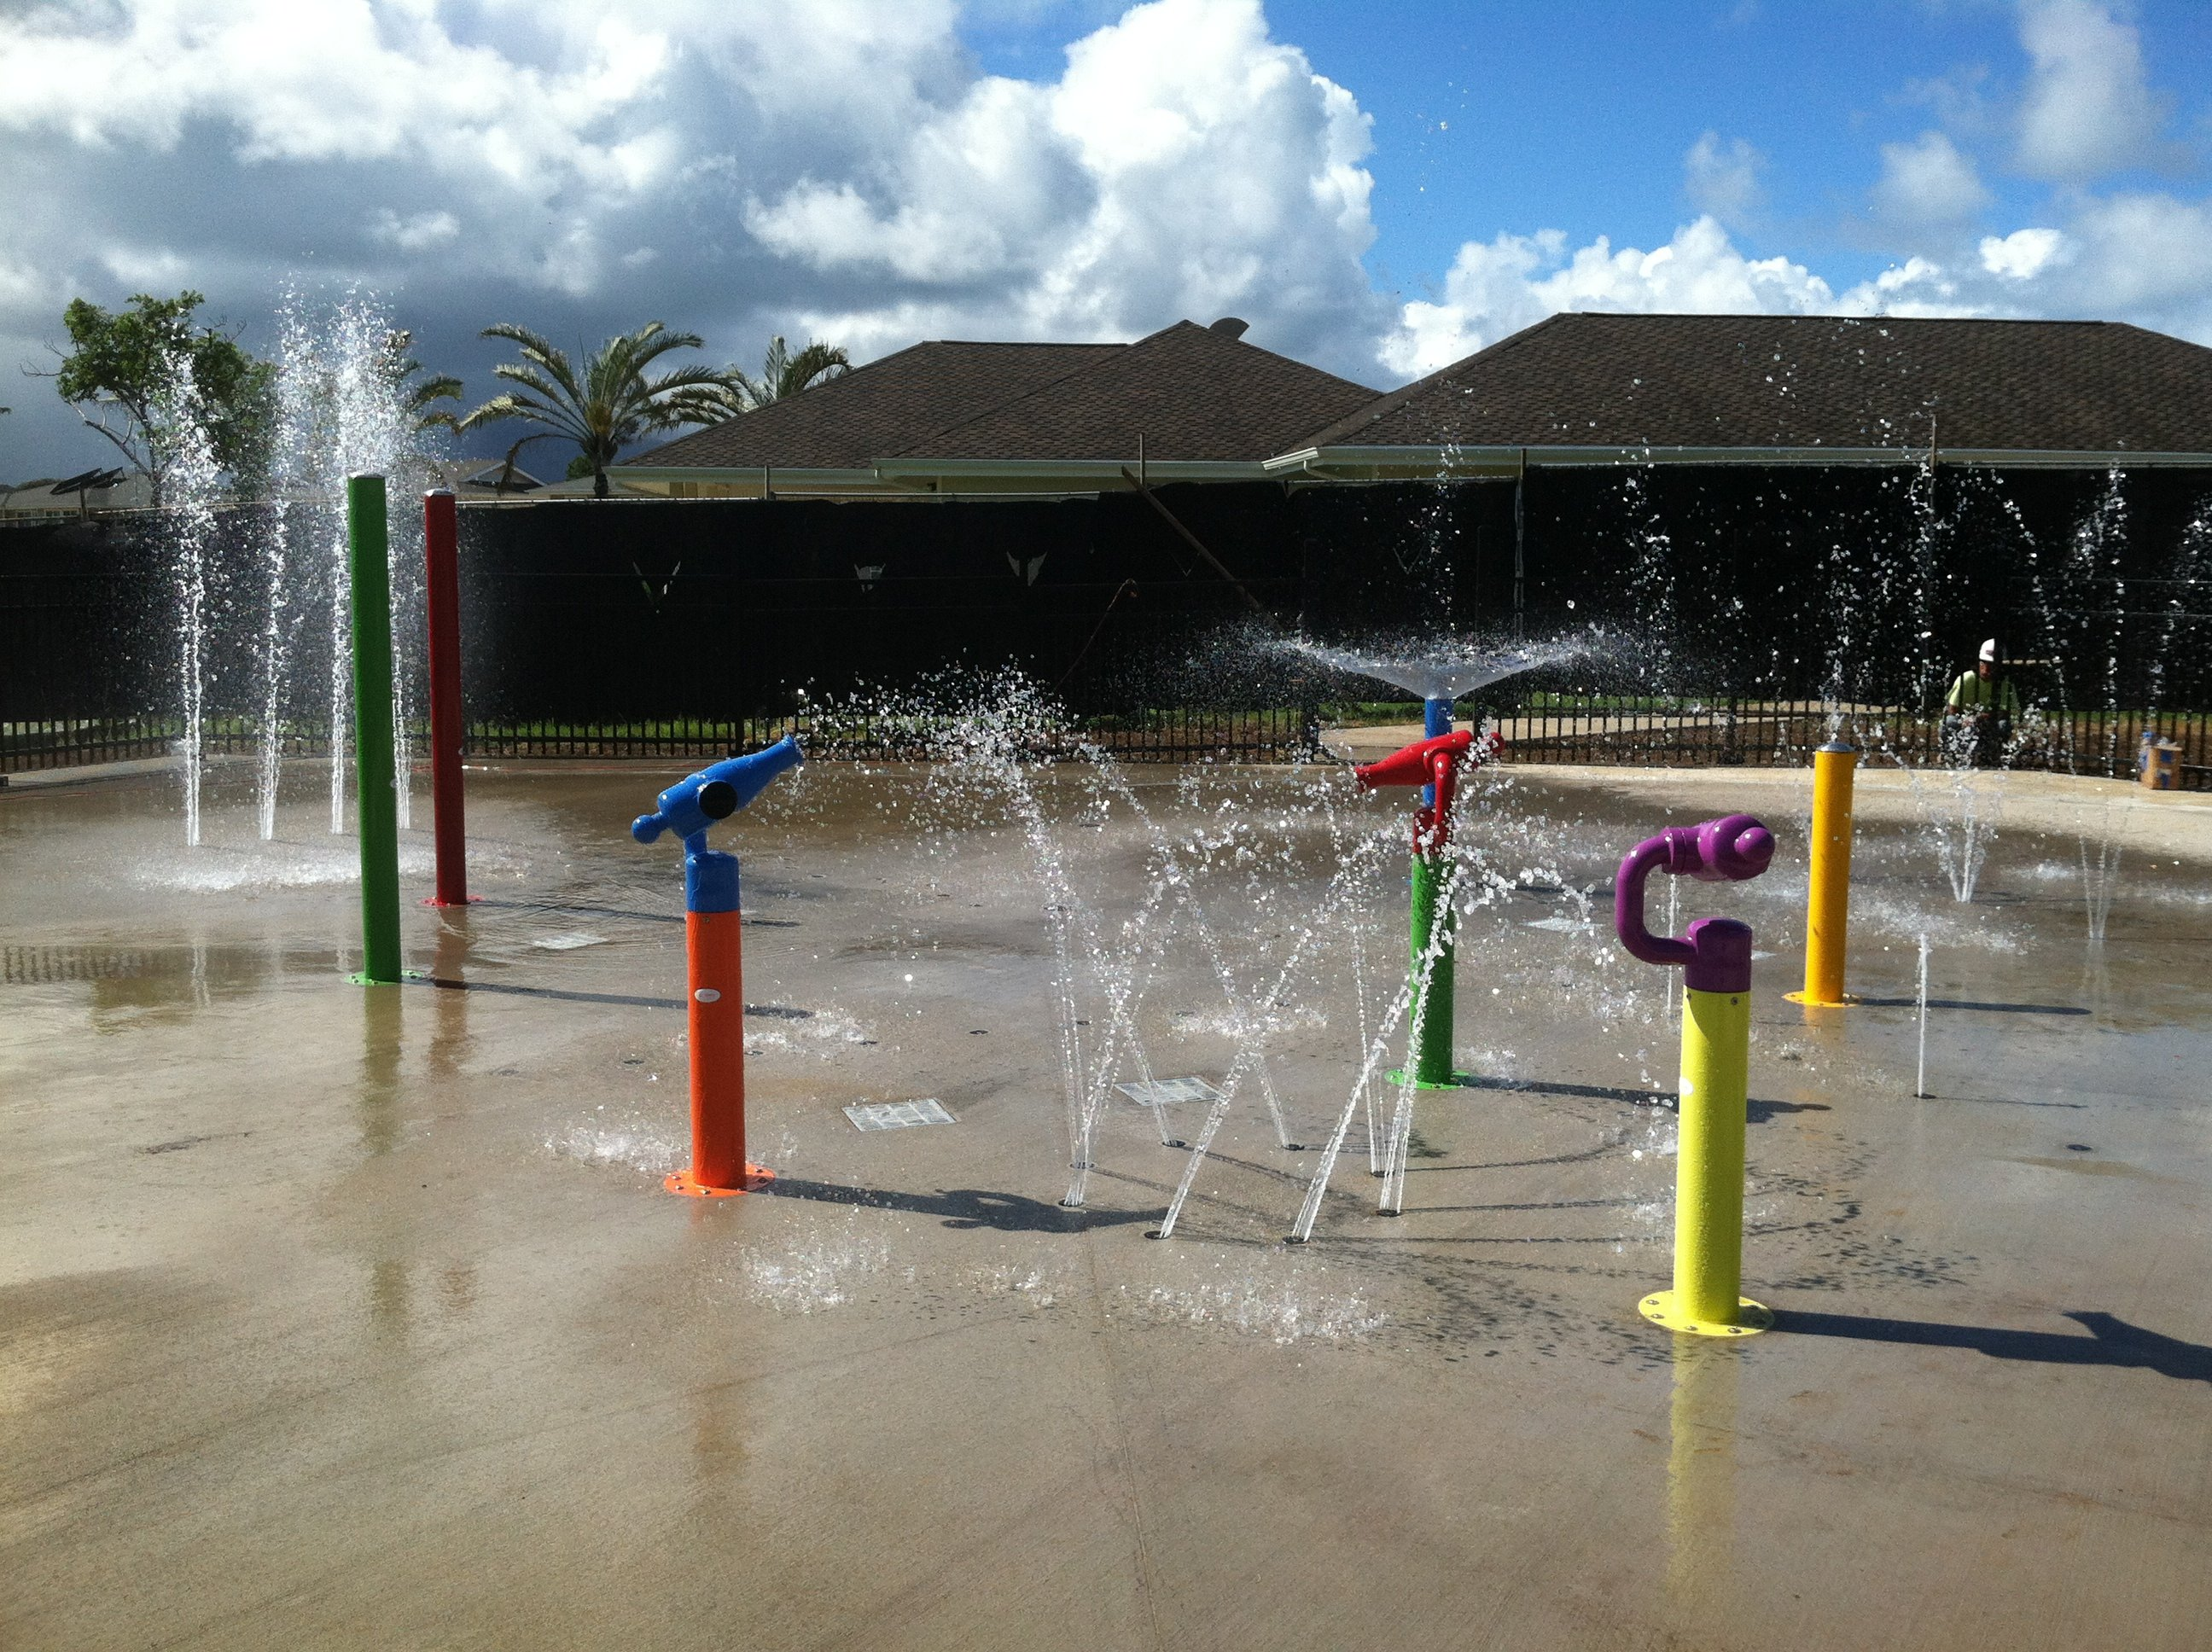 November 2012 - New Splash Park - Mololani Community Center